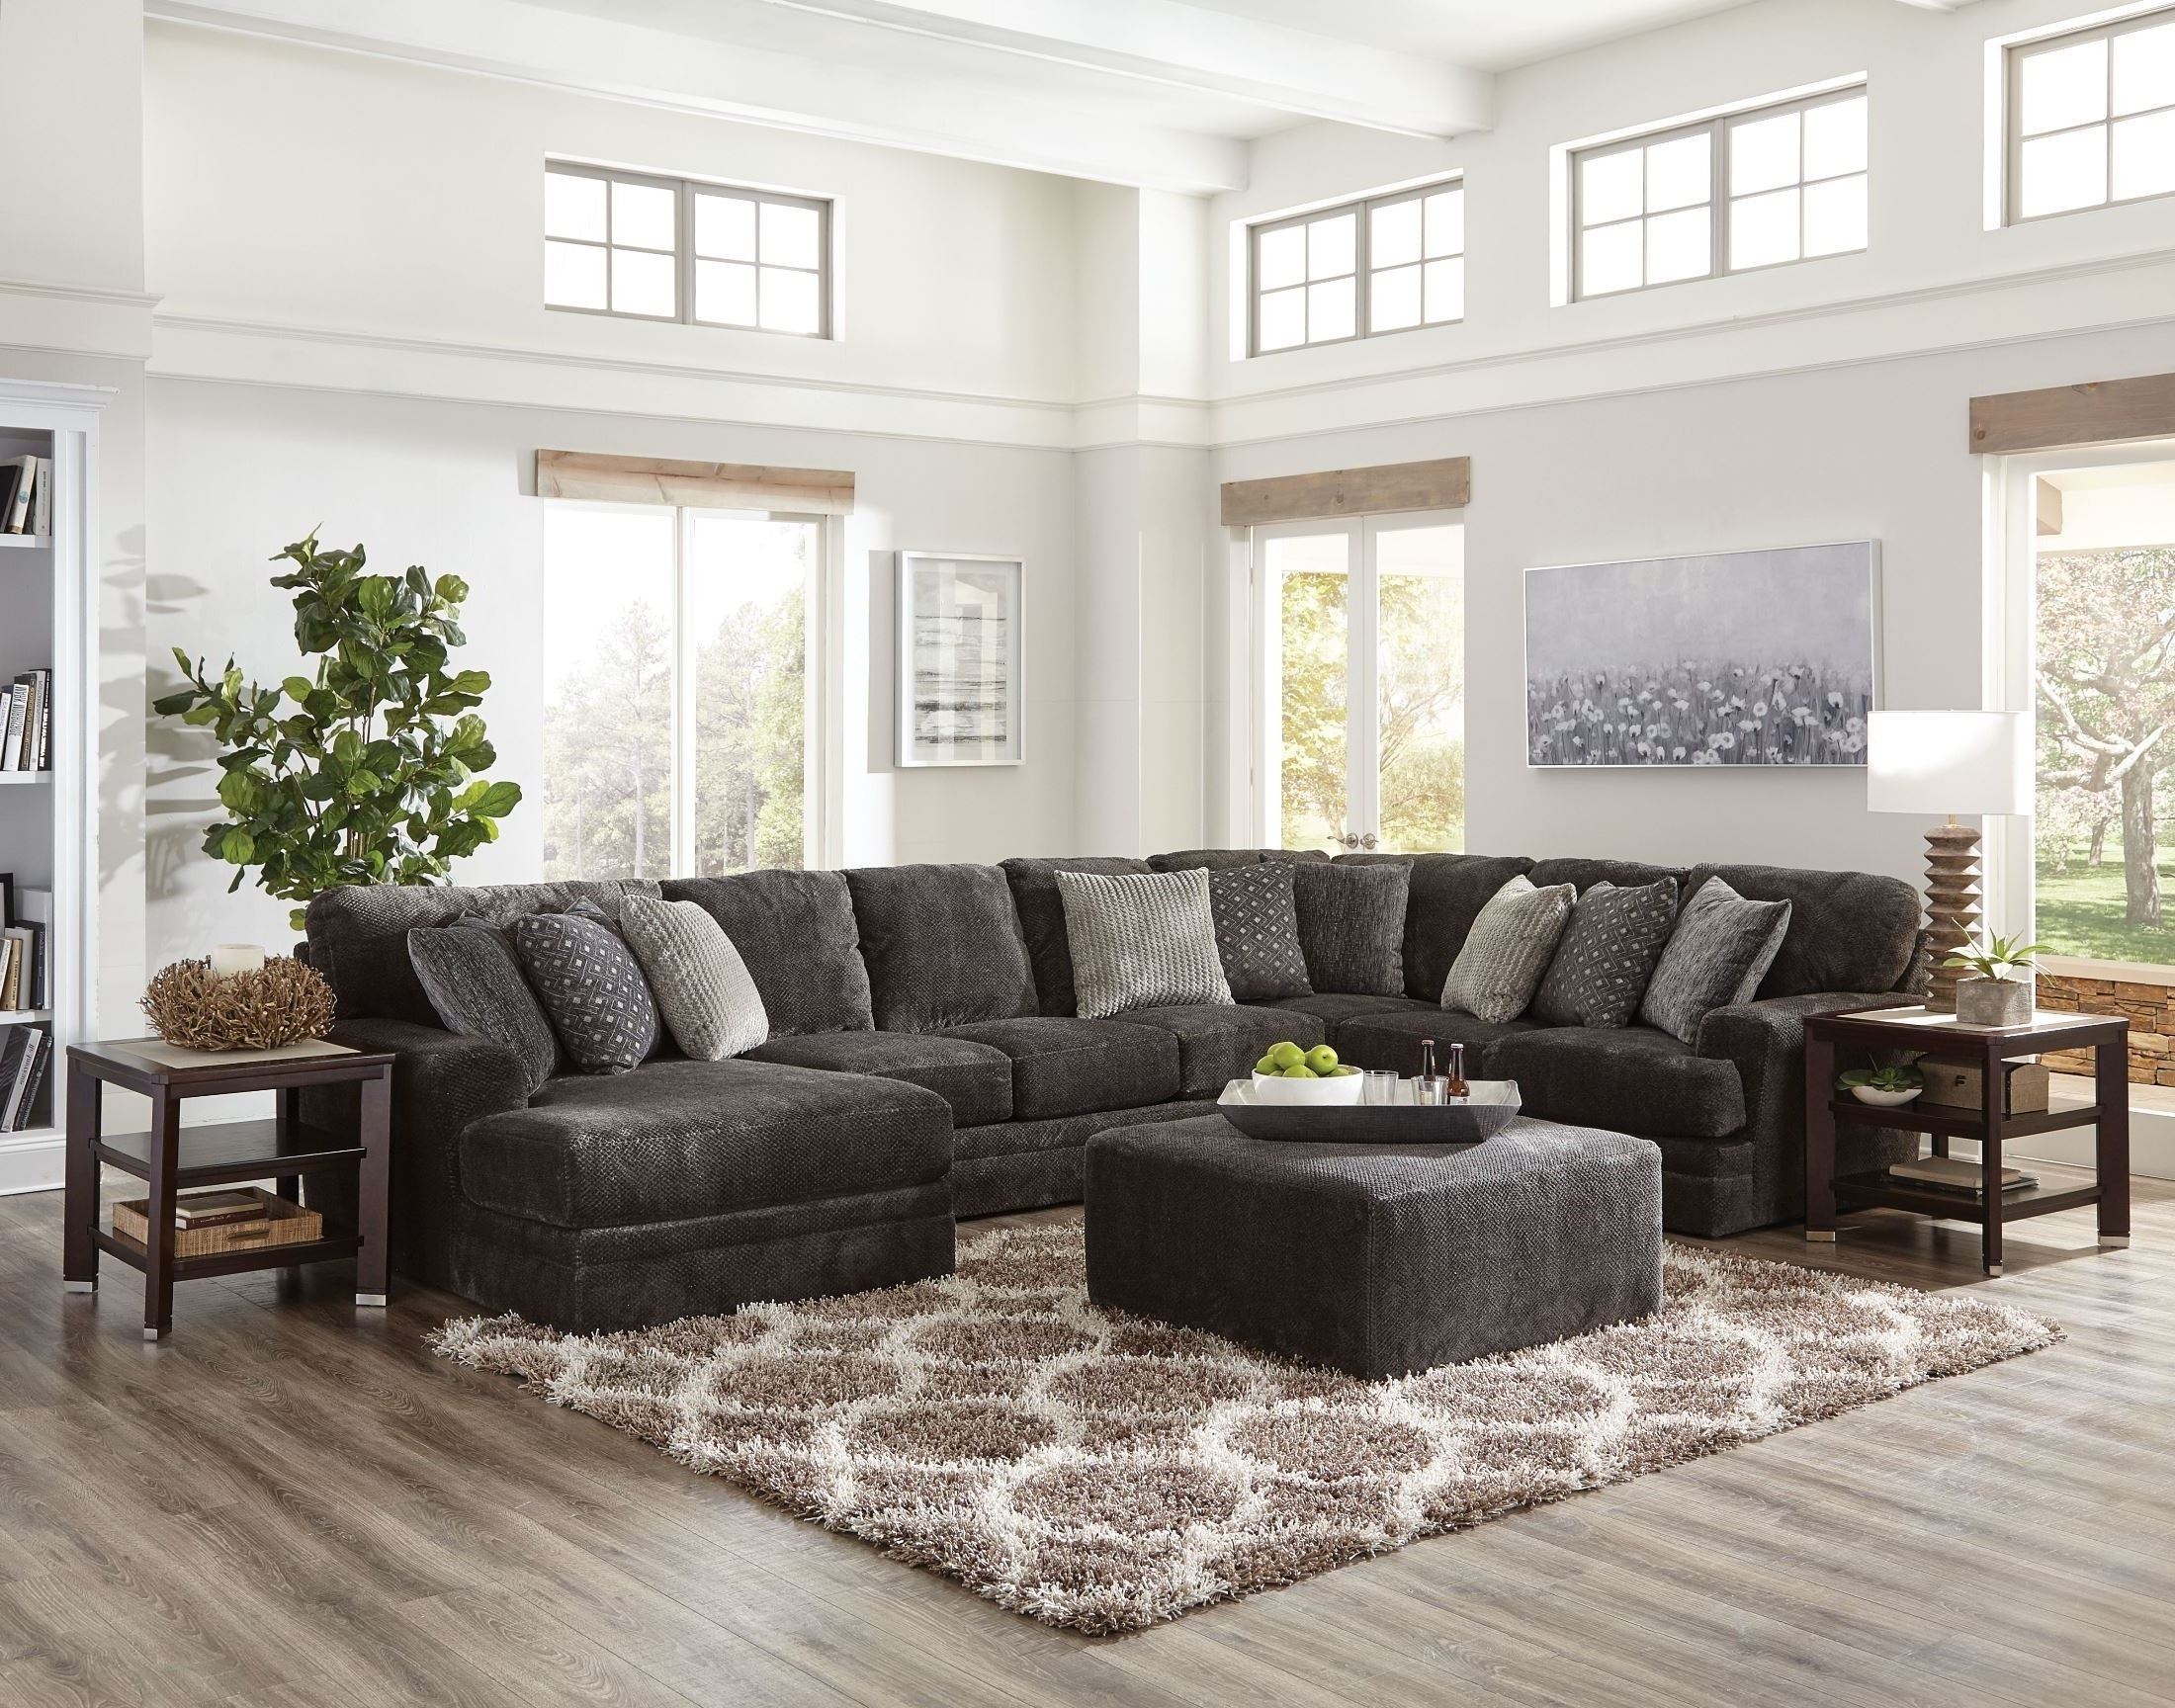 Mammoth Smoke Laf Chaise Sectional From Jackson | Coleman Furniture Throughout Avery 2 Piece Sectionals With Laf Armless Chaise (Image 19 of 25)